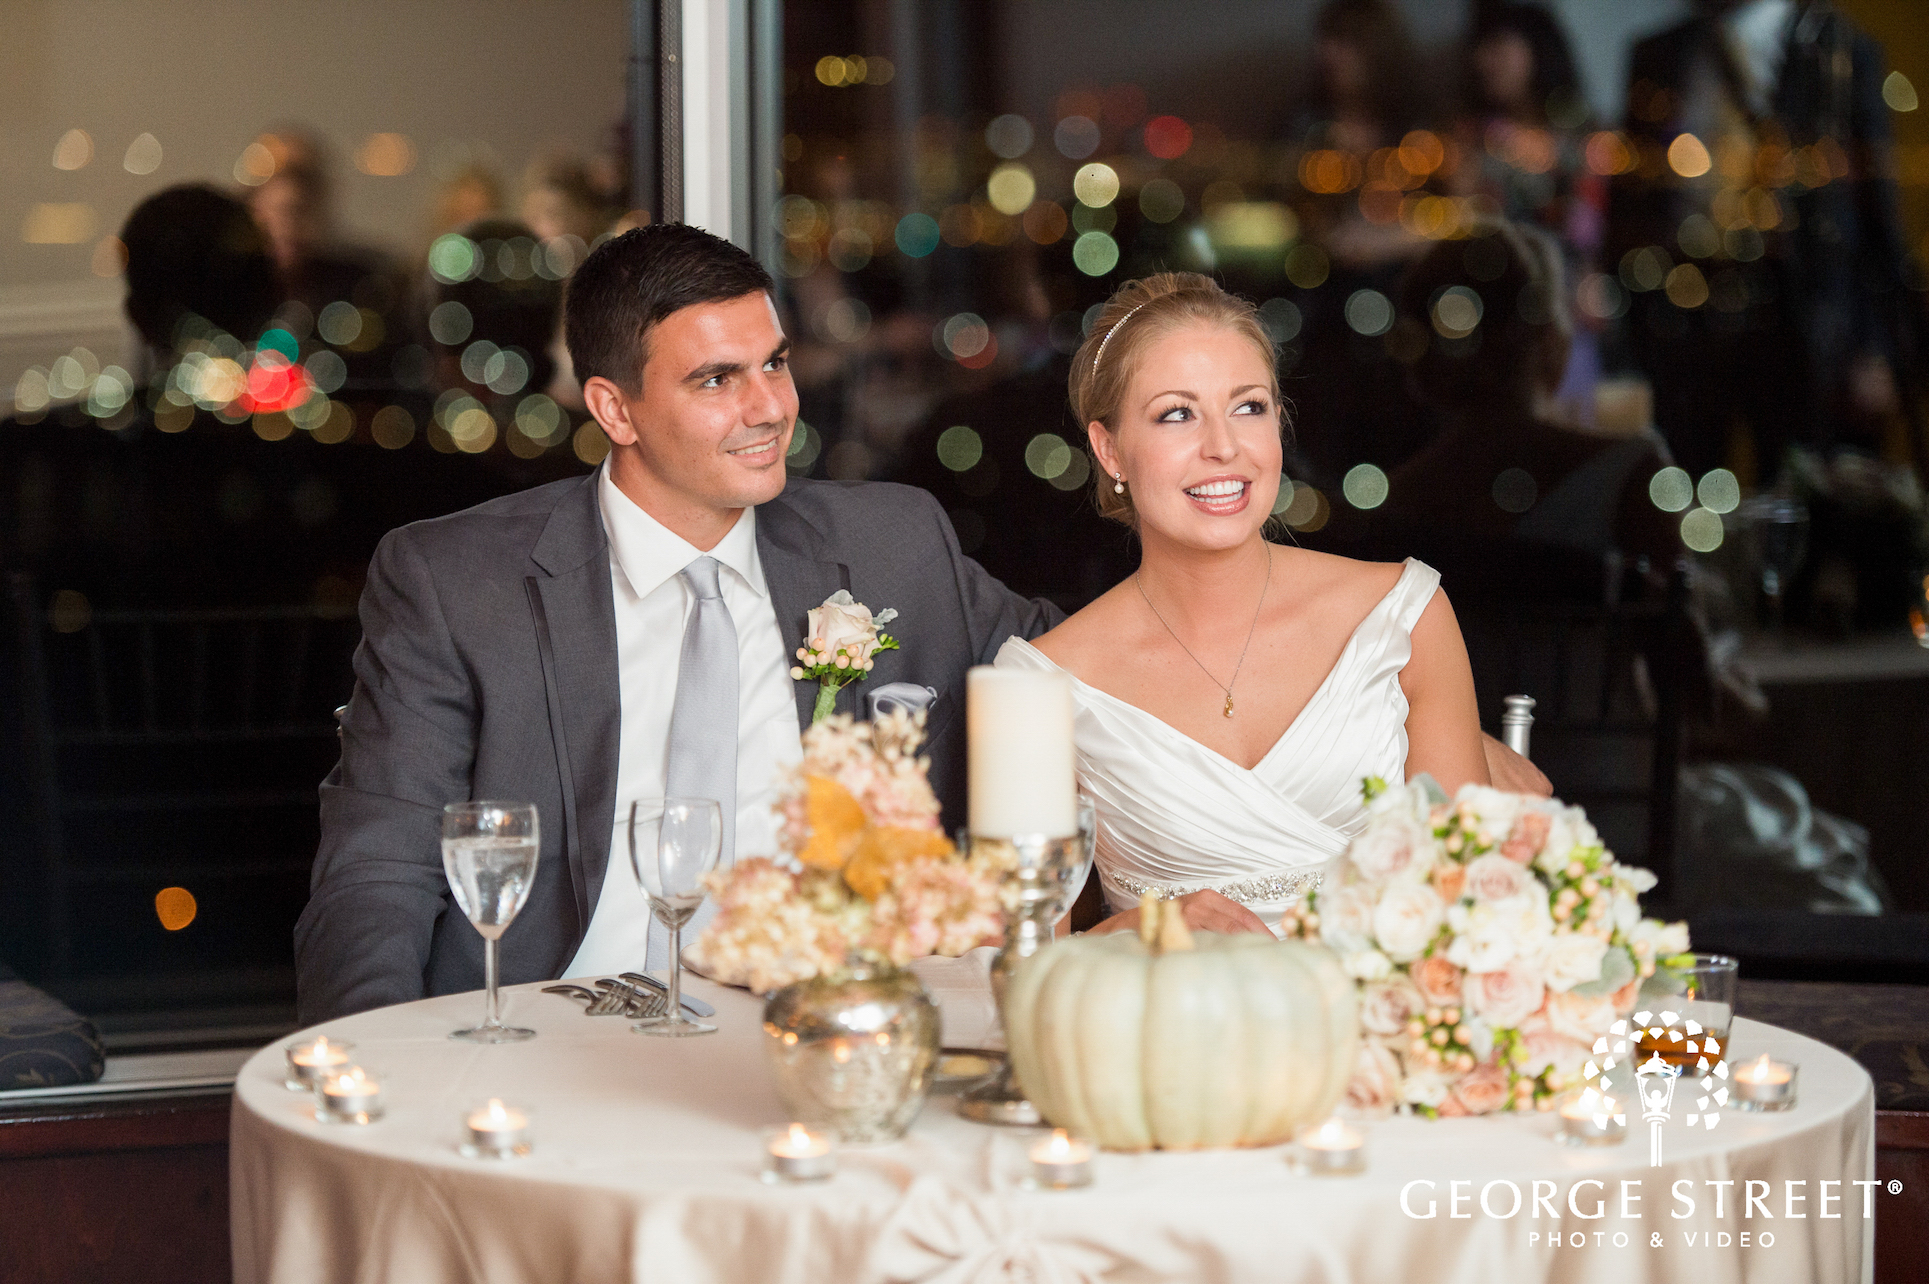 Bride and Groom at A Head Table At Their Reception